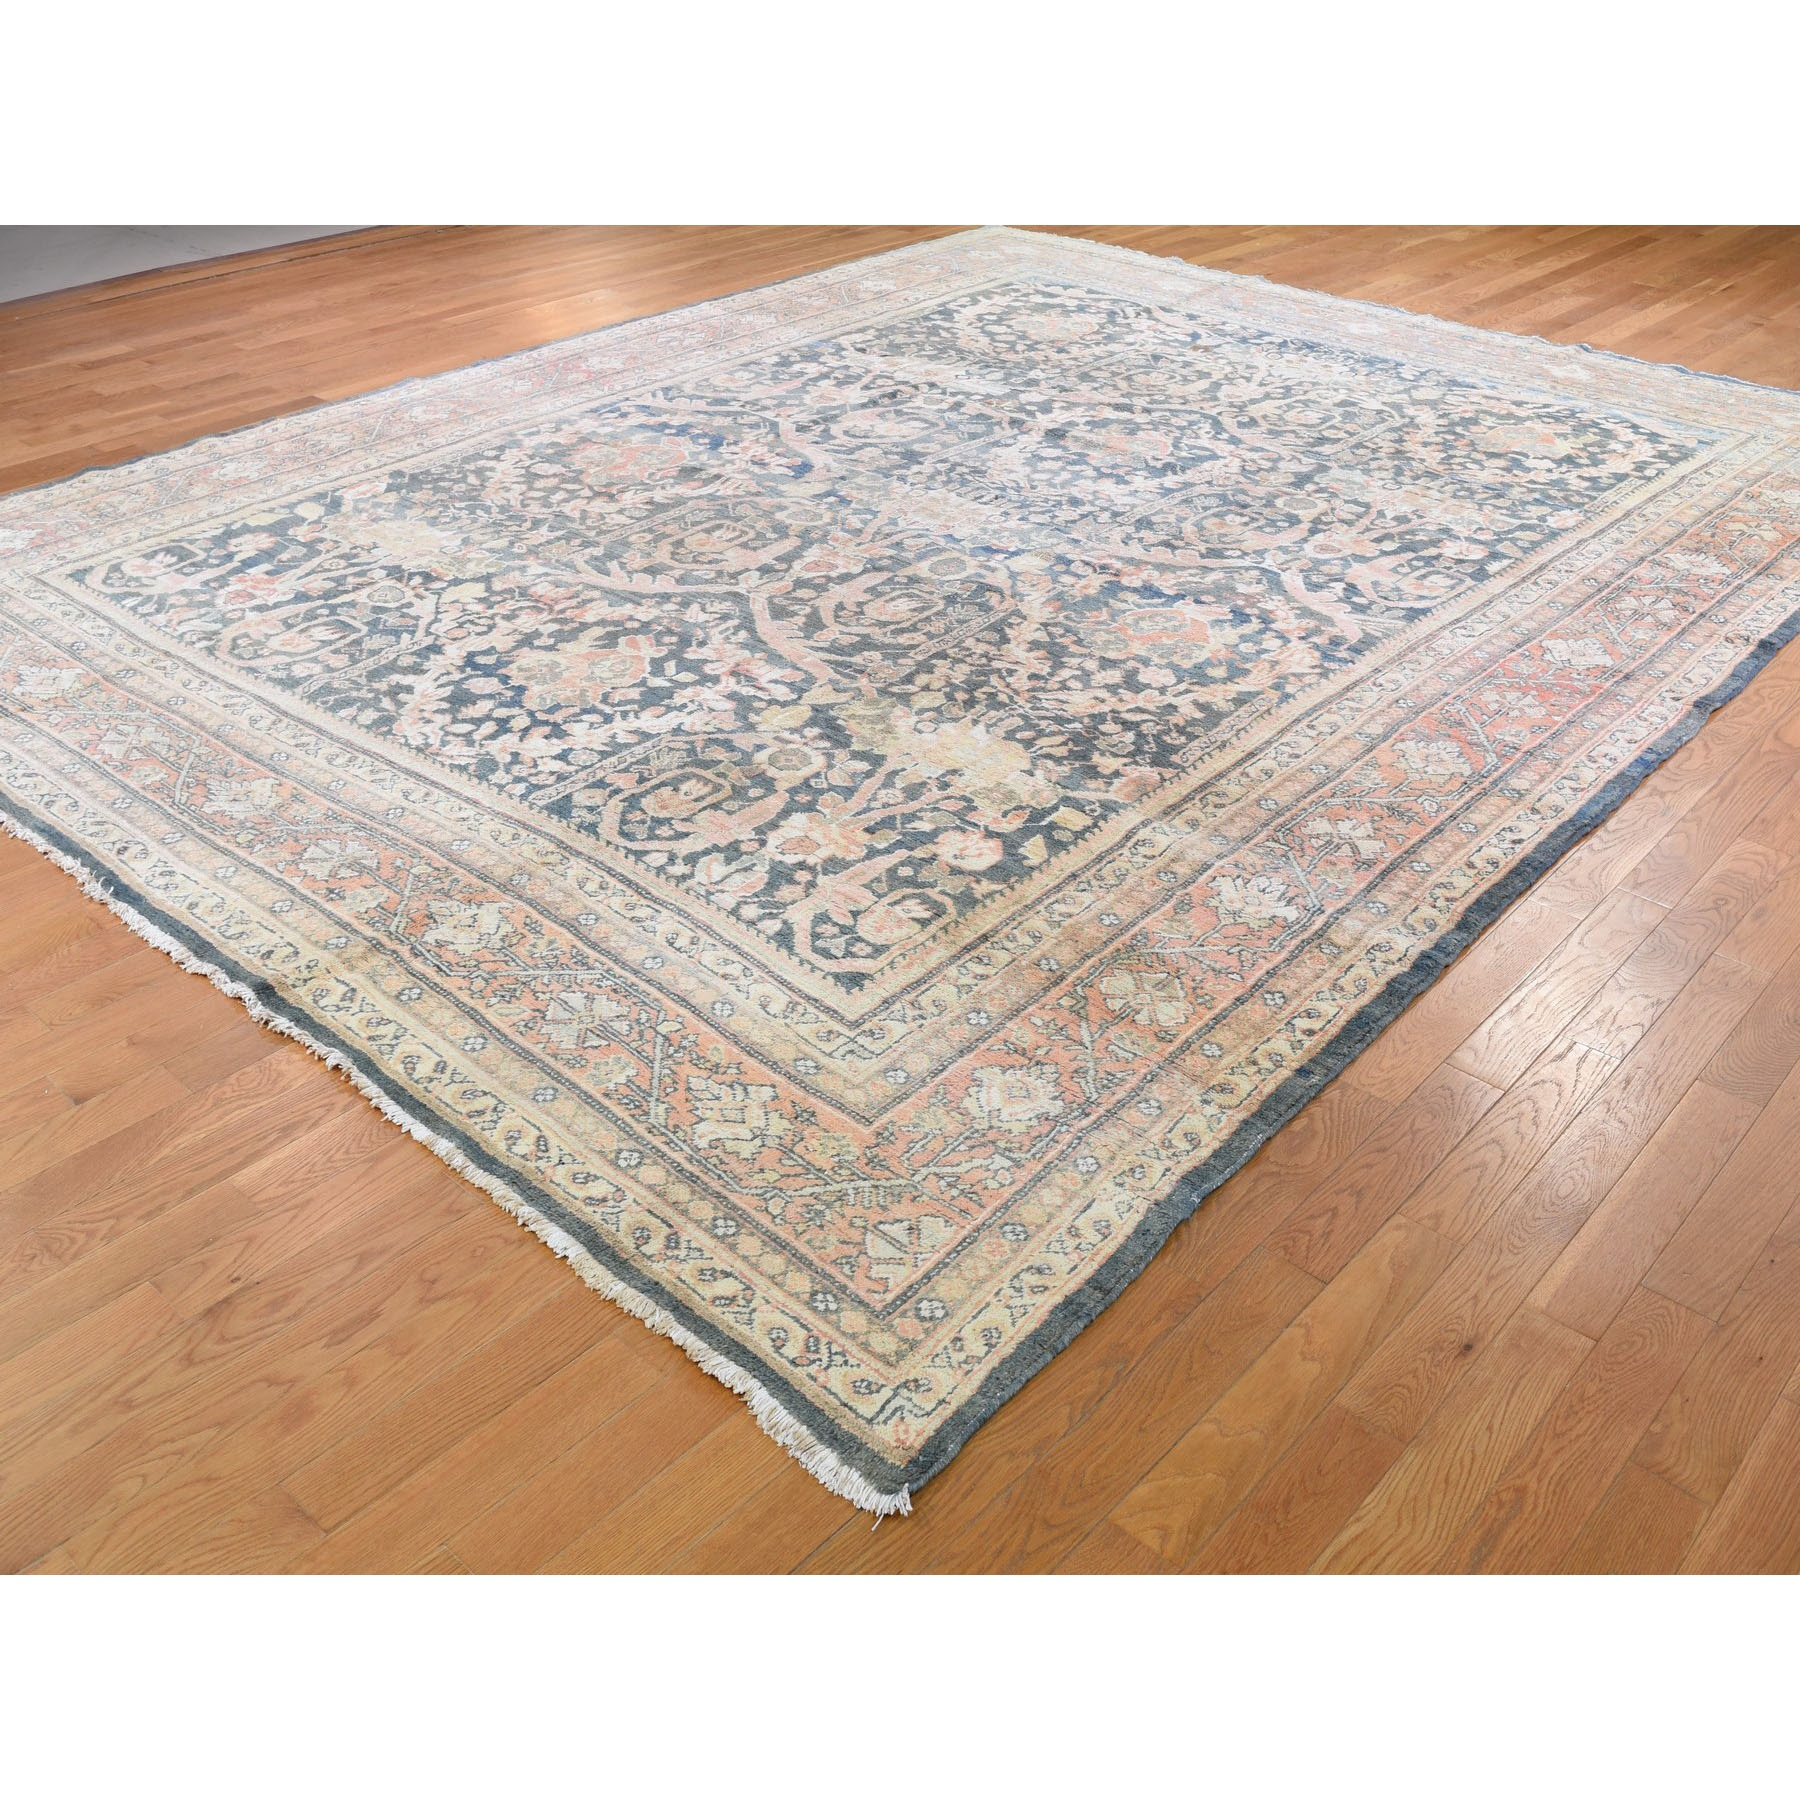 10-7 x13-6  Navy Antique Persian mahal Good Cond Pure Wool Hand Knotted Oriental Rug